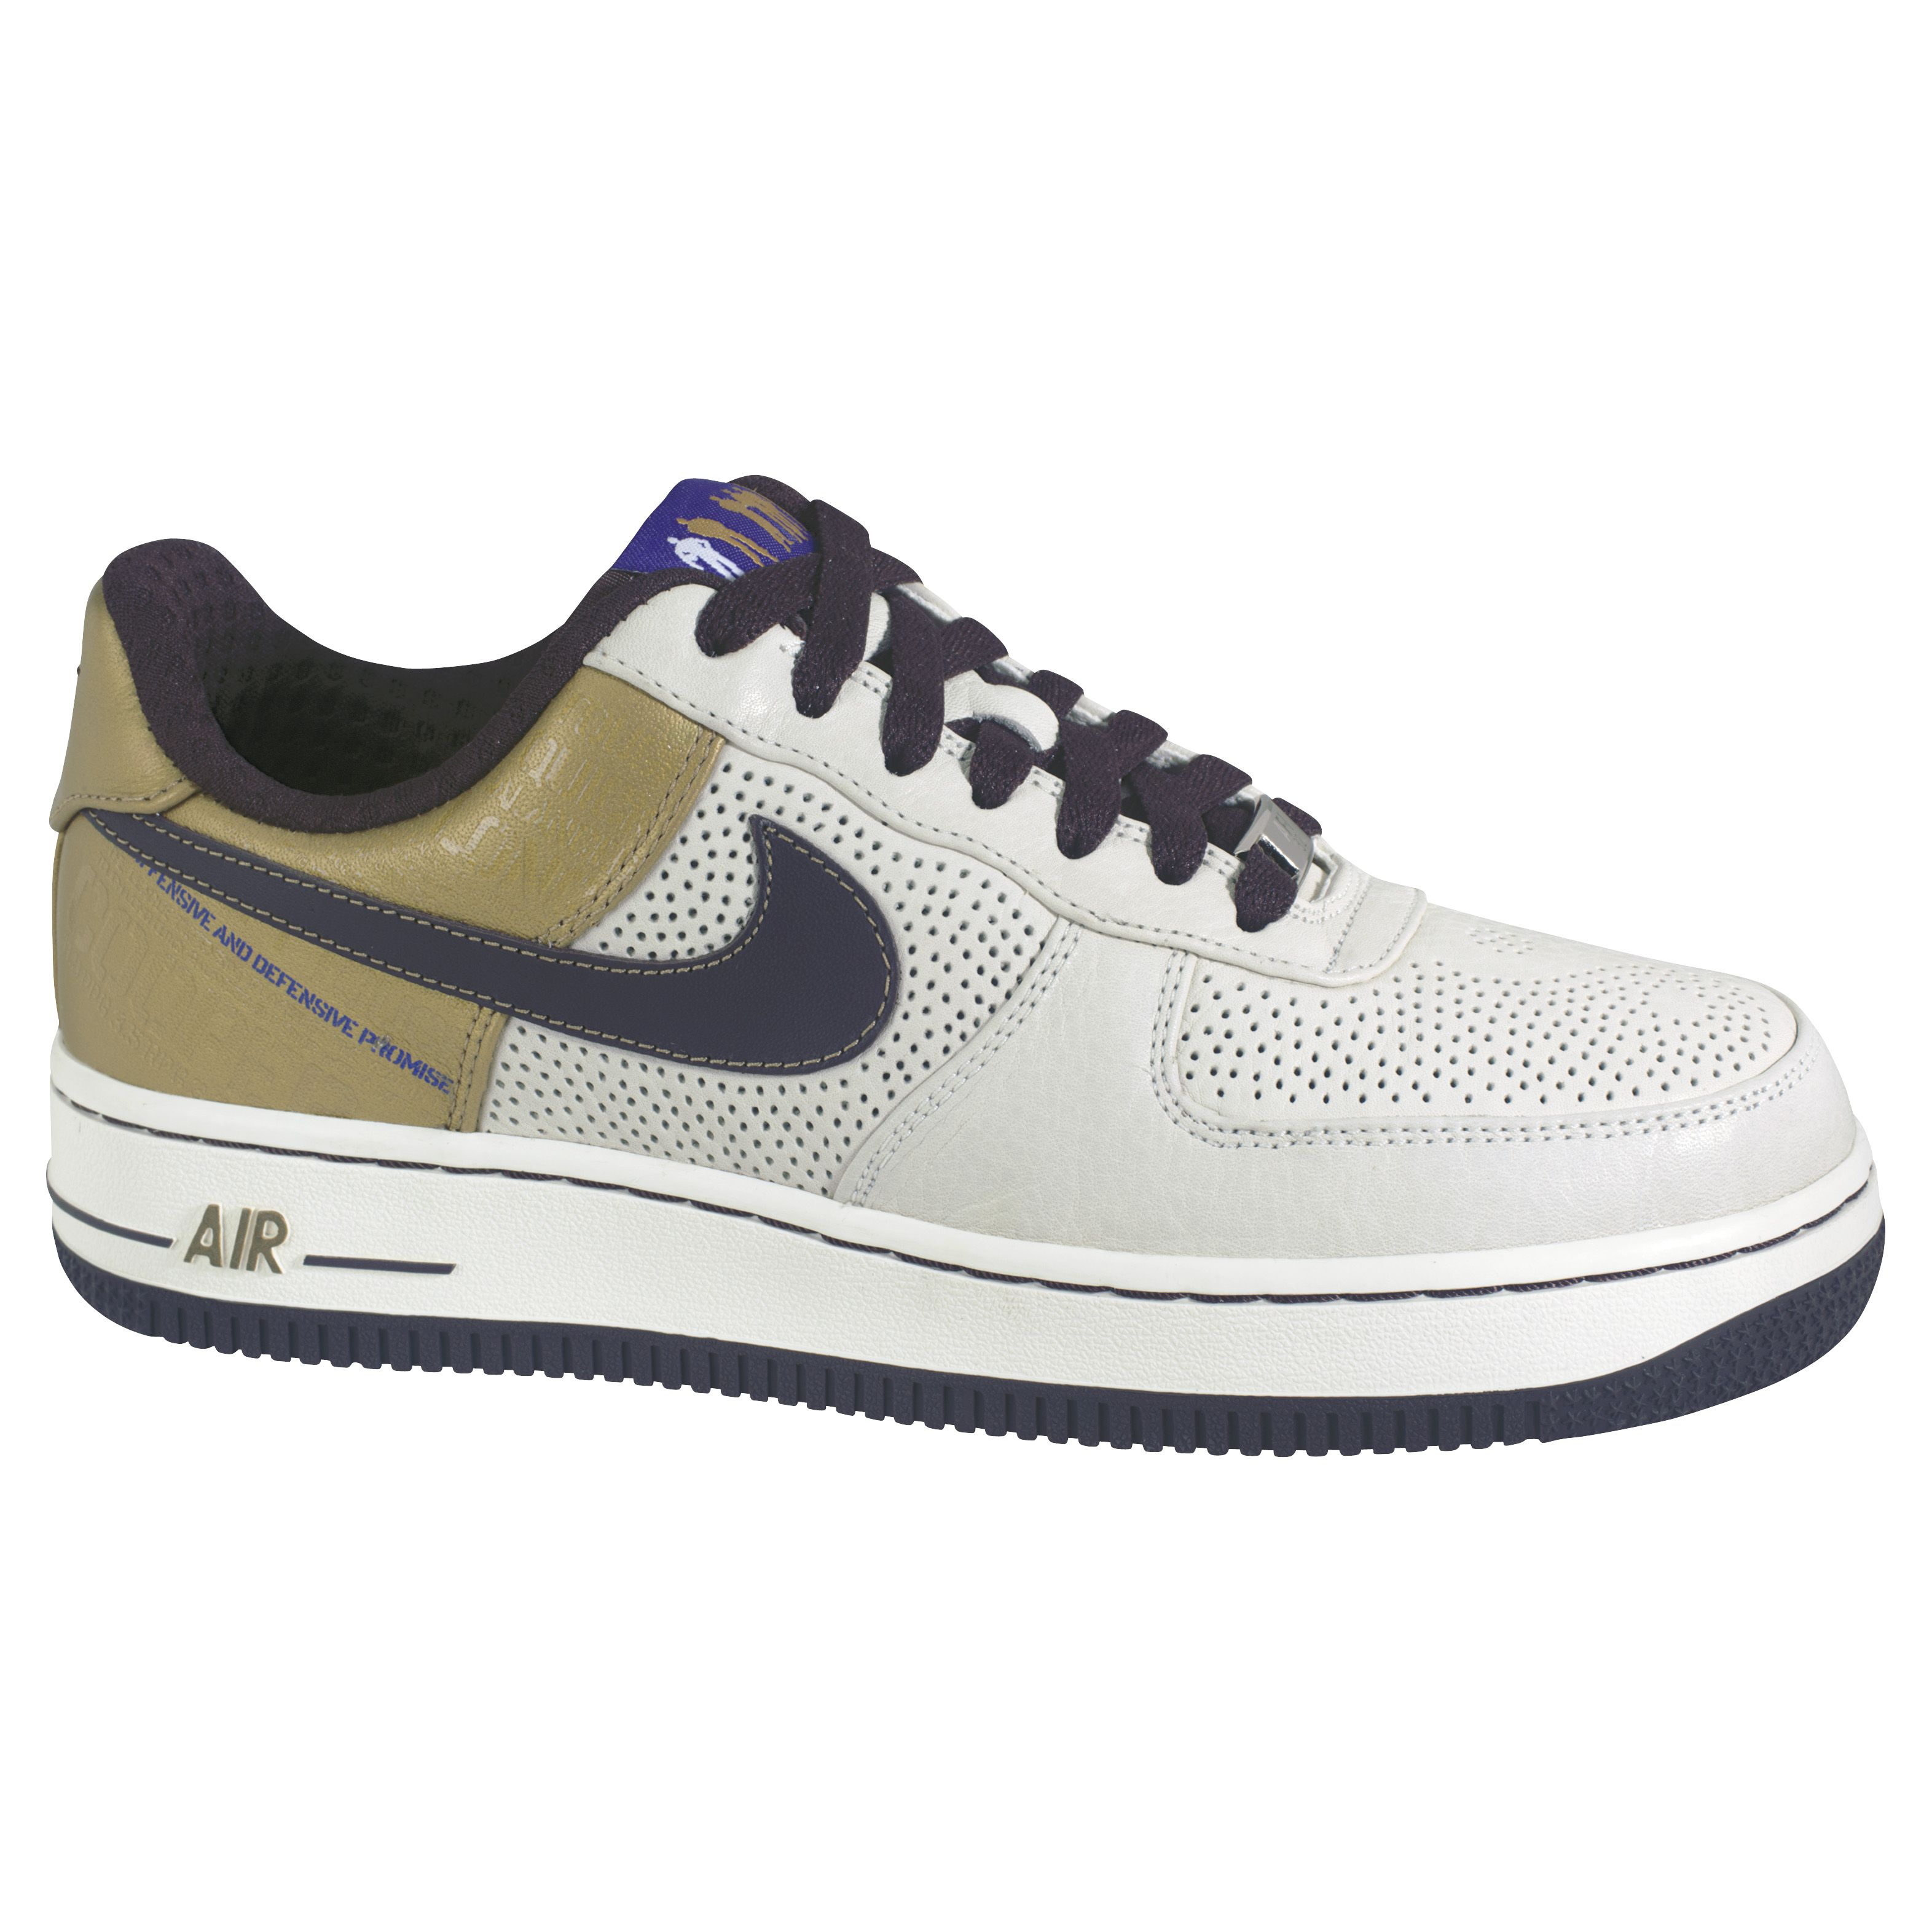 differently 98805 6b3c7 Air Force 1 Supreme  07 (Wilkes) http   images.nike .com is image DotCom 315087 121 A  wid 3144 hei 3144